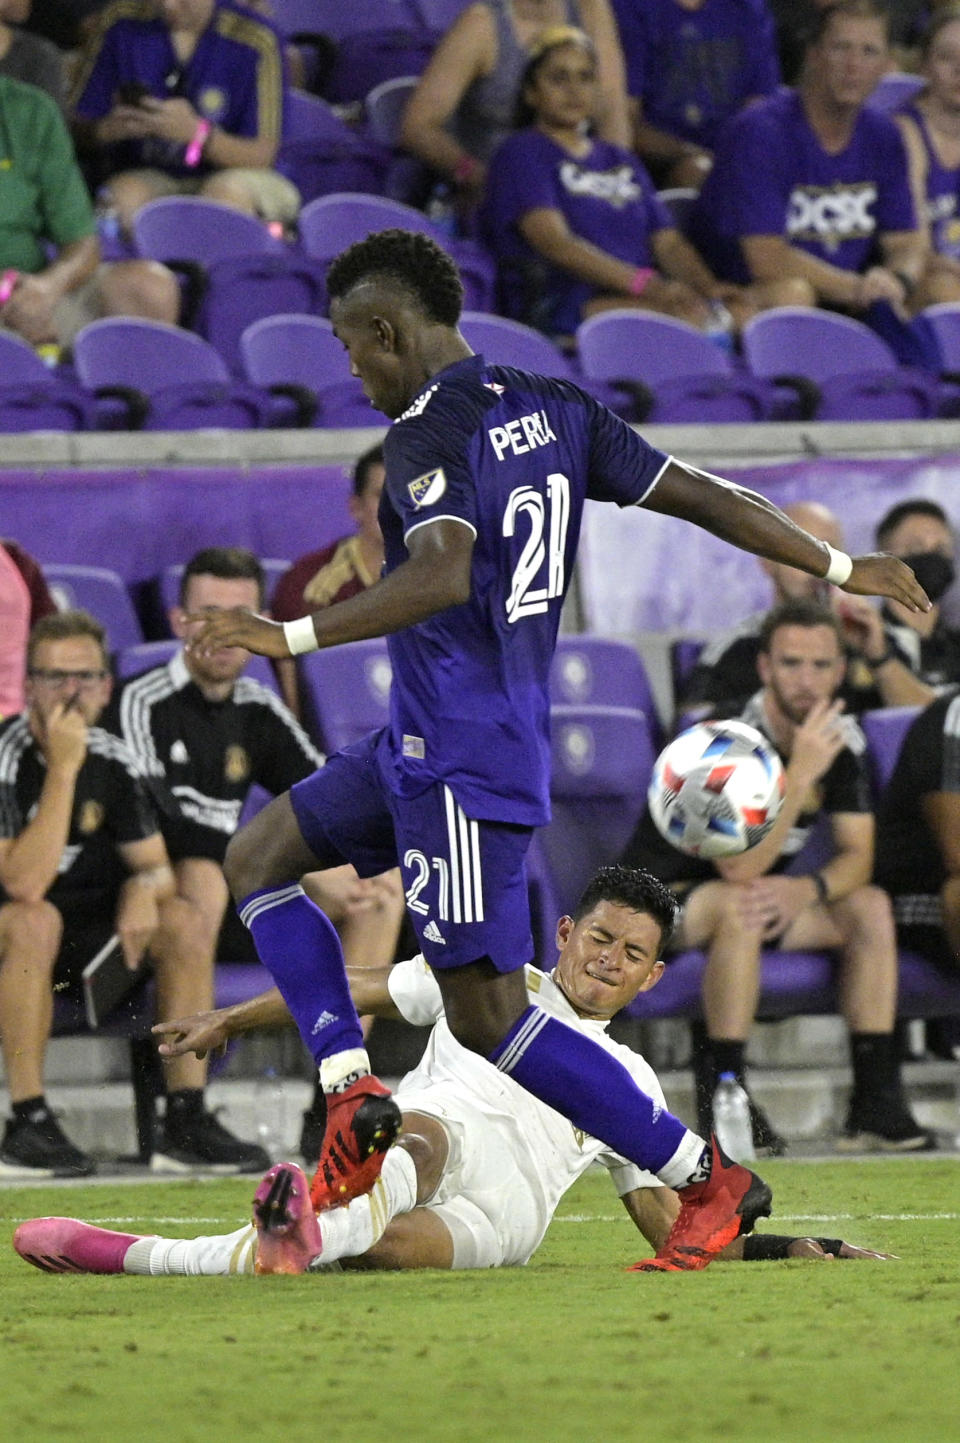 Orlando City midfielder Andres Perea (21) and Atlanta United defender Ronald Hernandez, below, compete for the ball during the second half of an MLS soccer match Friday, July 30, 2021, in Orlando, Fla. (Phelan M. Ebenhack/Orlando Sentinel via AP)